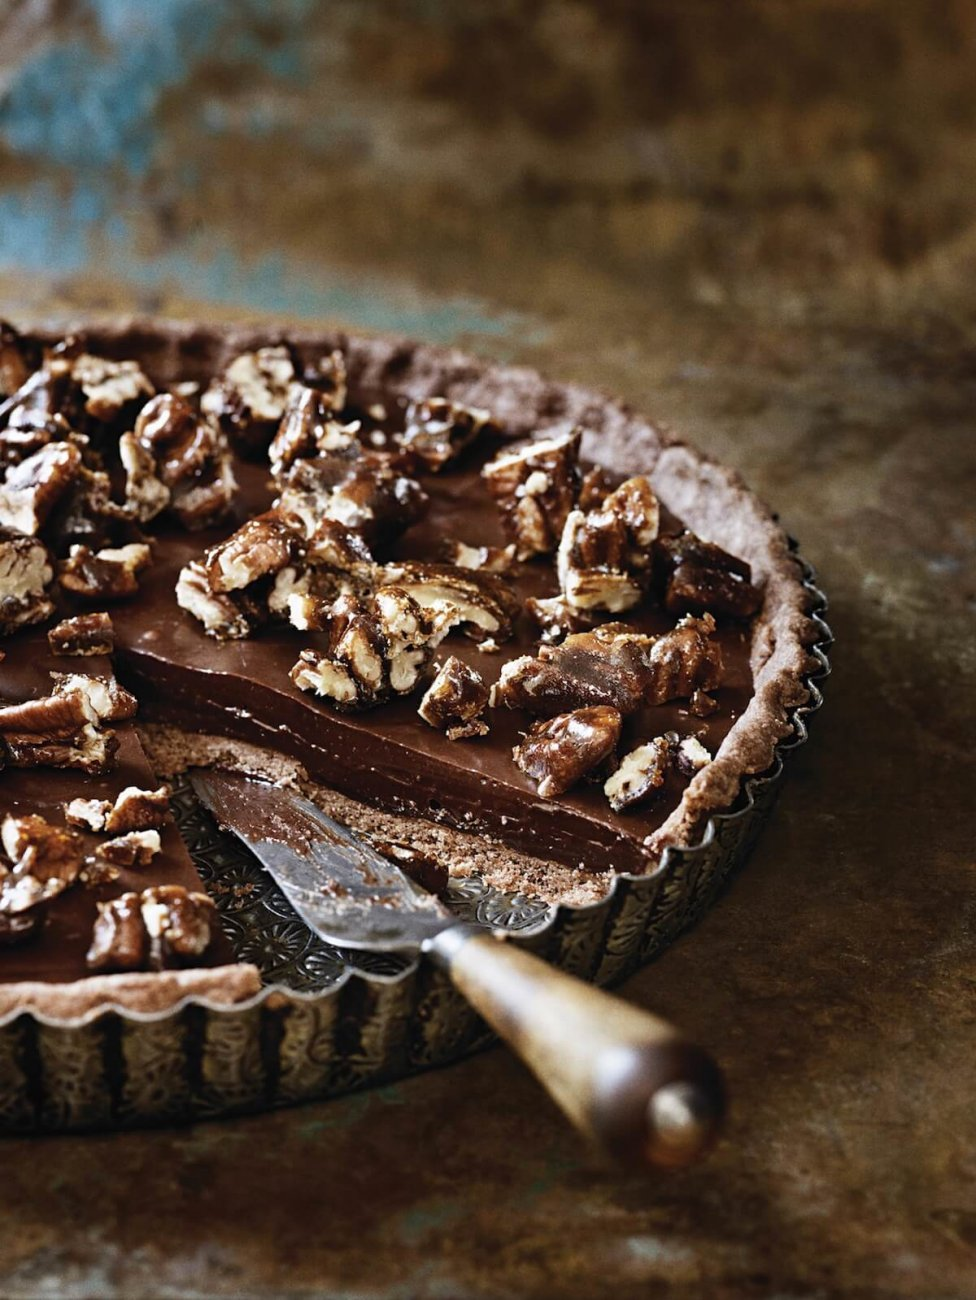 SEA-SALTED CHOCOLATE AND PECAN TART